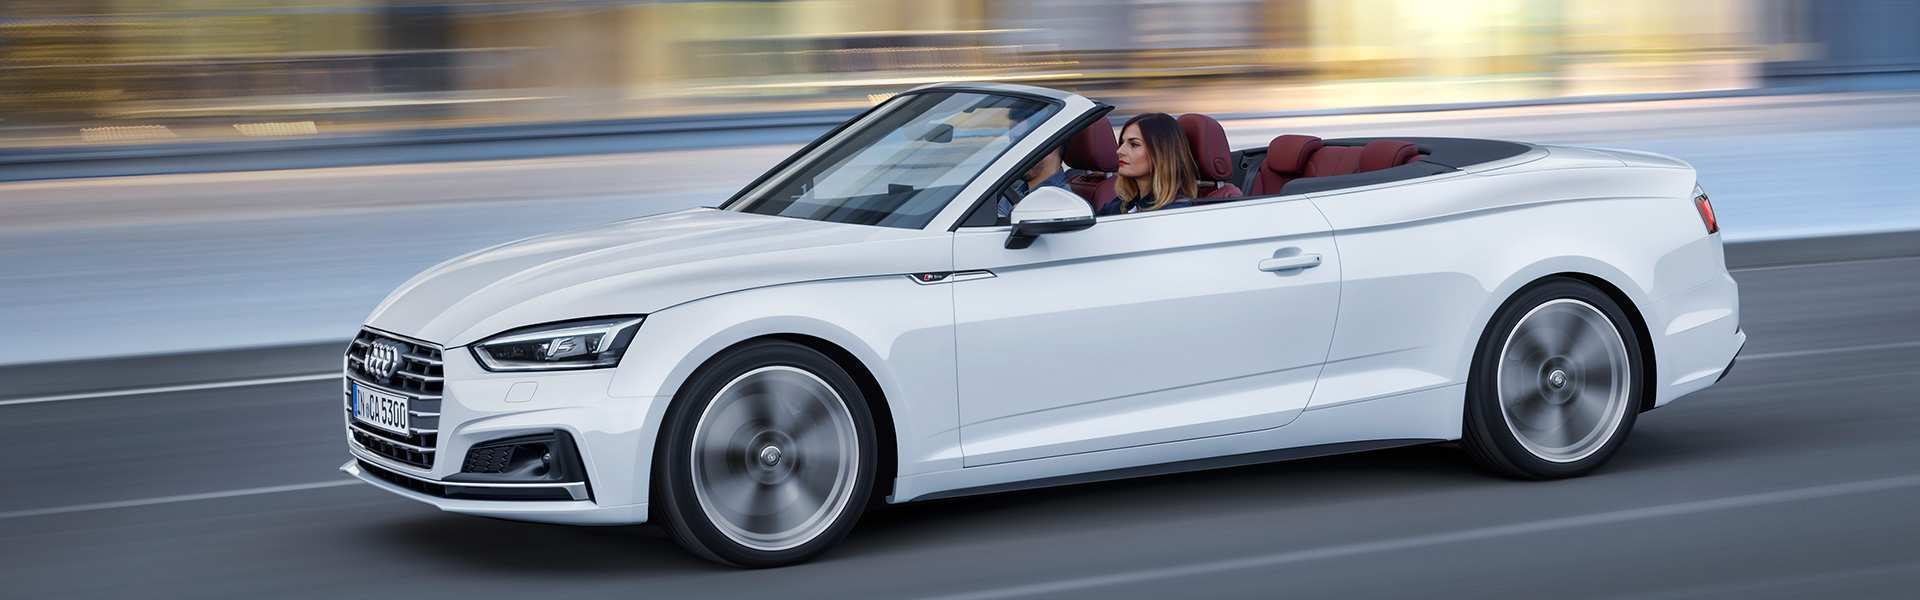 56 A 2019 Audi S5 Cabriolet Concept And Review